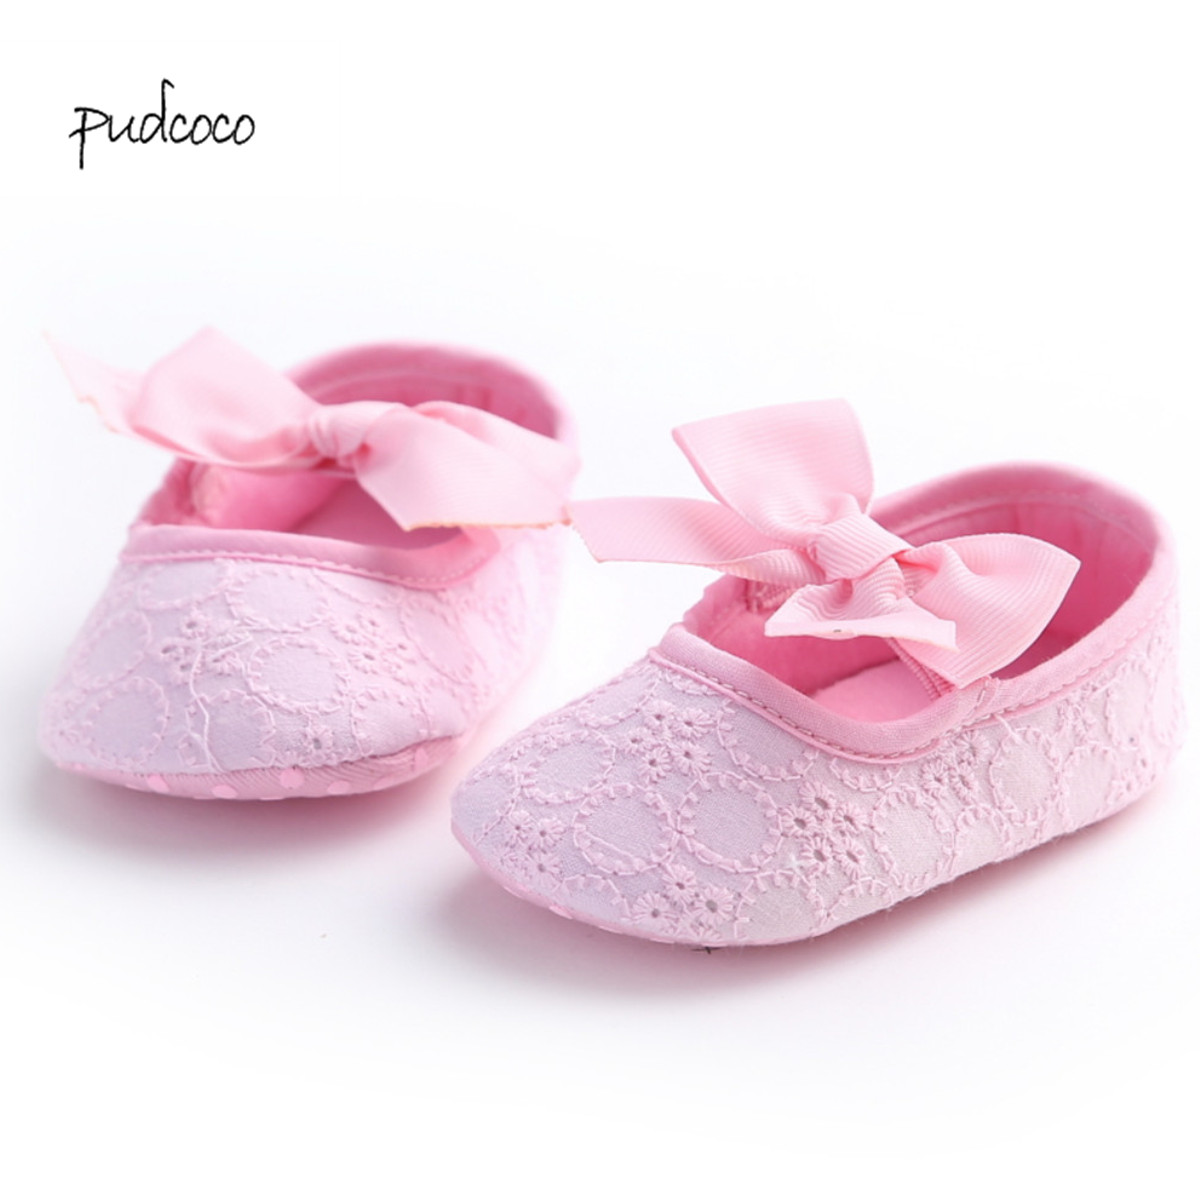 Infant Newborn Baby Girl Lace Crib Pram Shoes Bow Soft Sole Shoes Prewalker